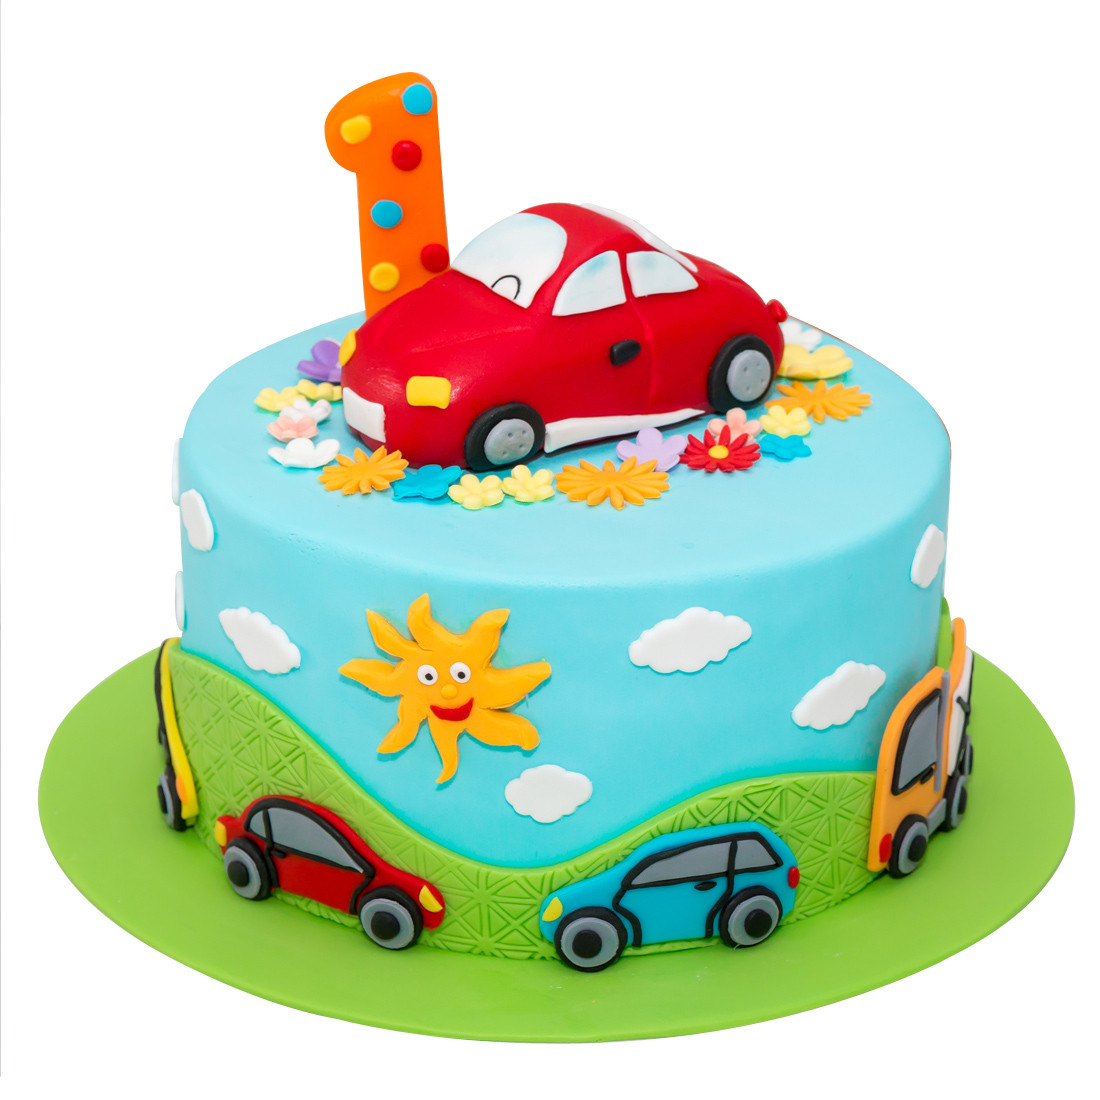 Car cake design for boys without fondant next, crumb coat the carved cake with buttercream. Cute Racing Car Kids Cake 2 Kg And Card